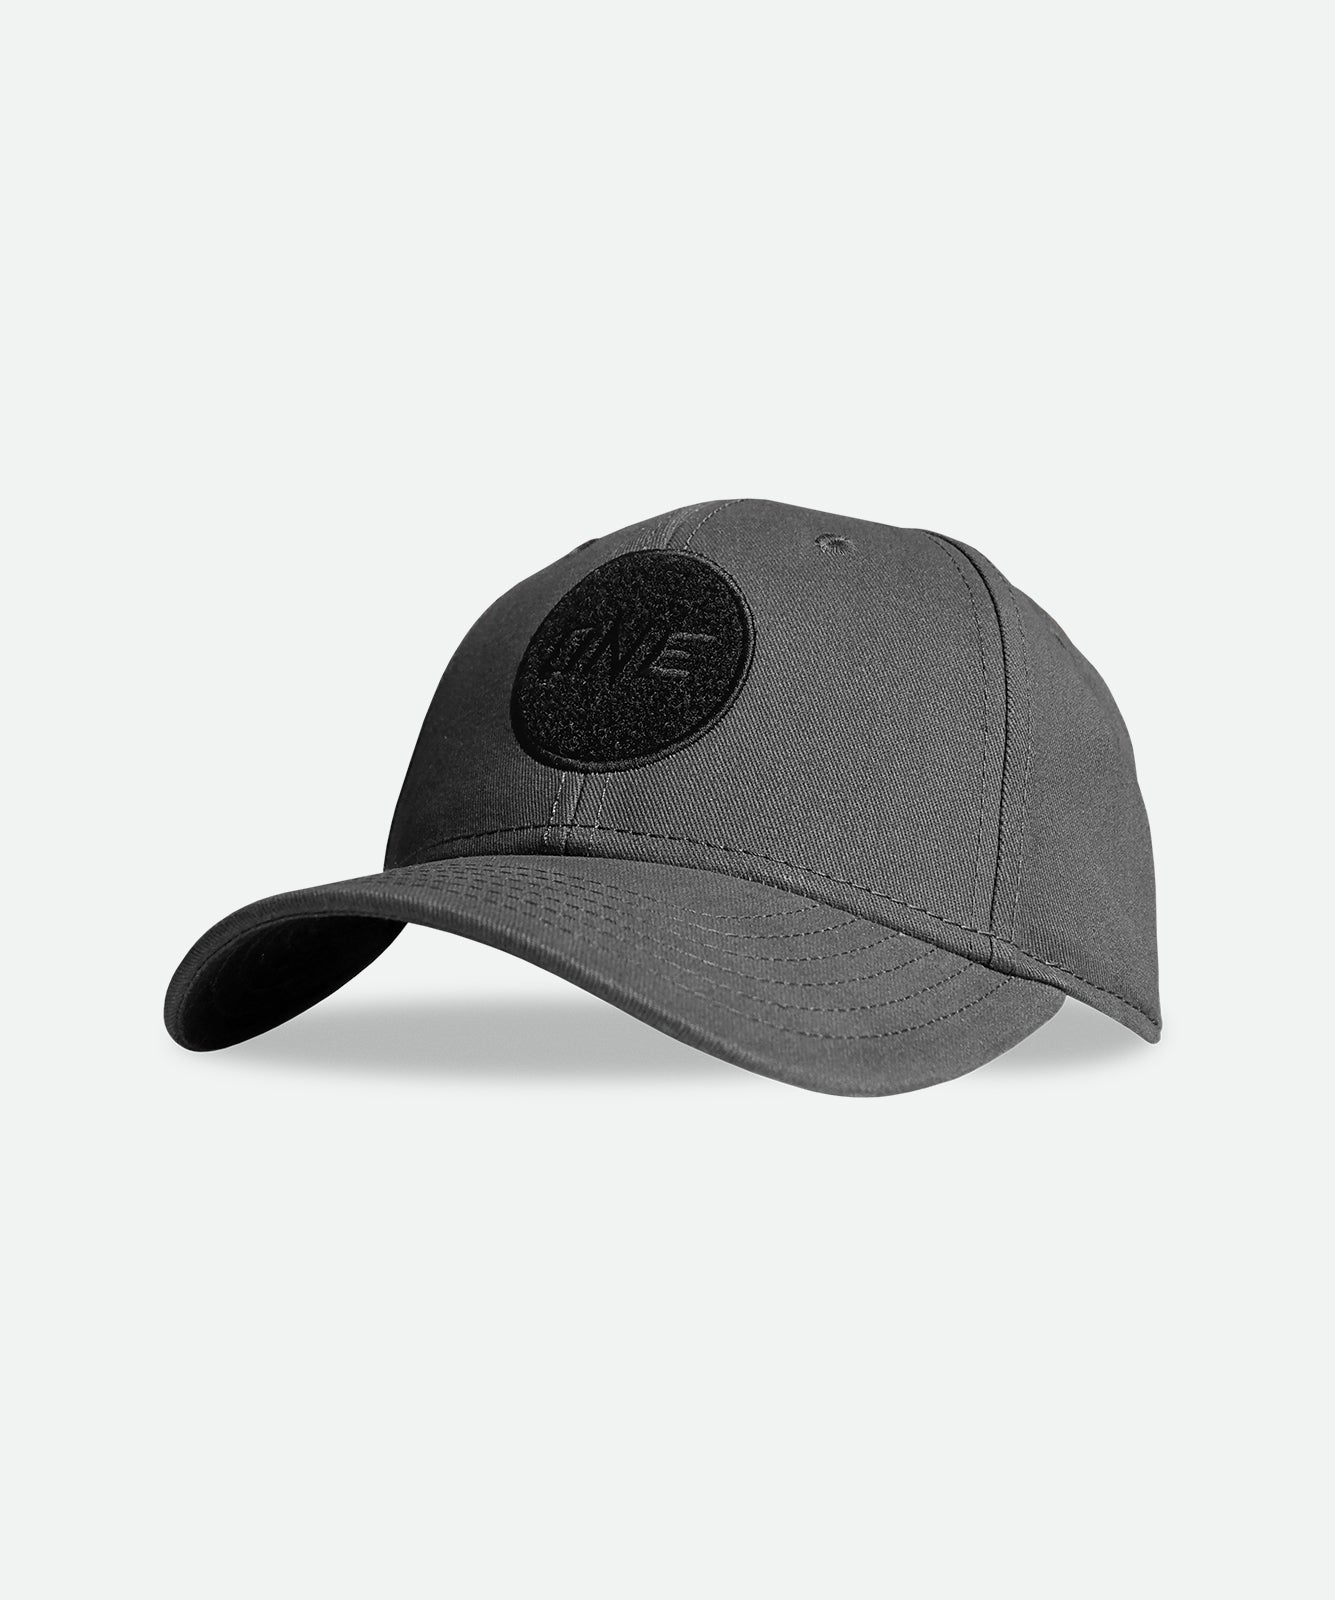 ONE Hero Cap (Gray) - ONE.SHOP | The Official Online Shop of ONE Championship